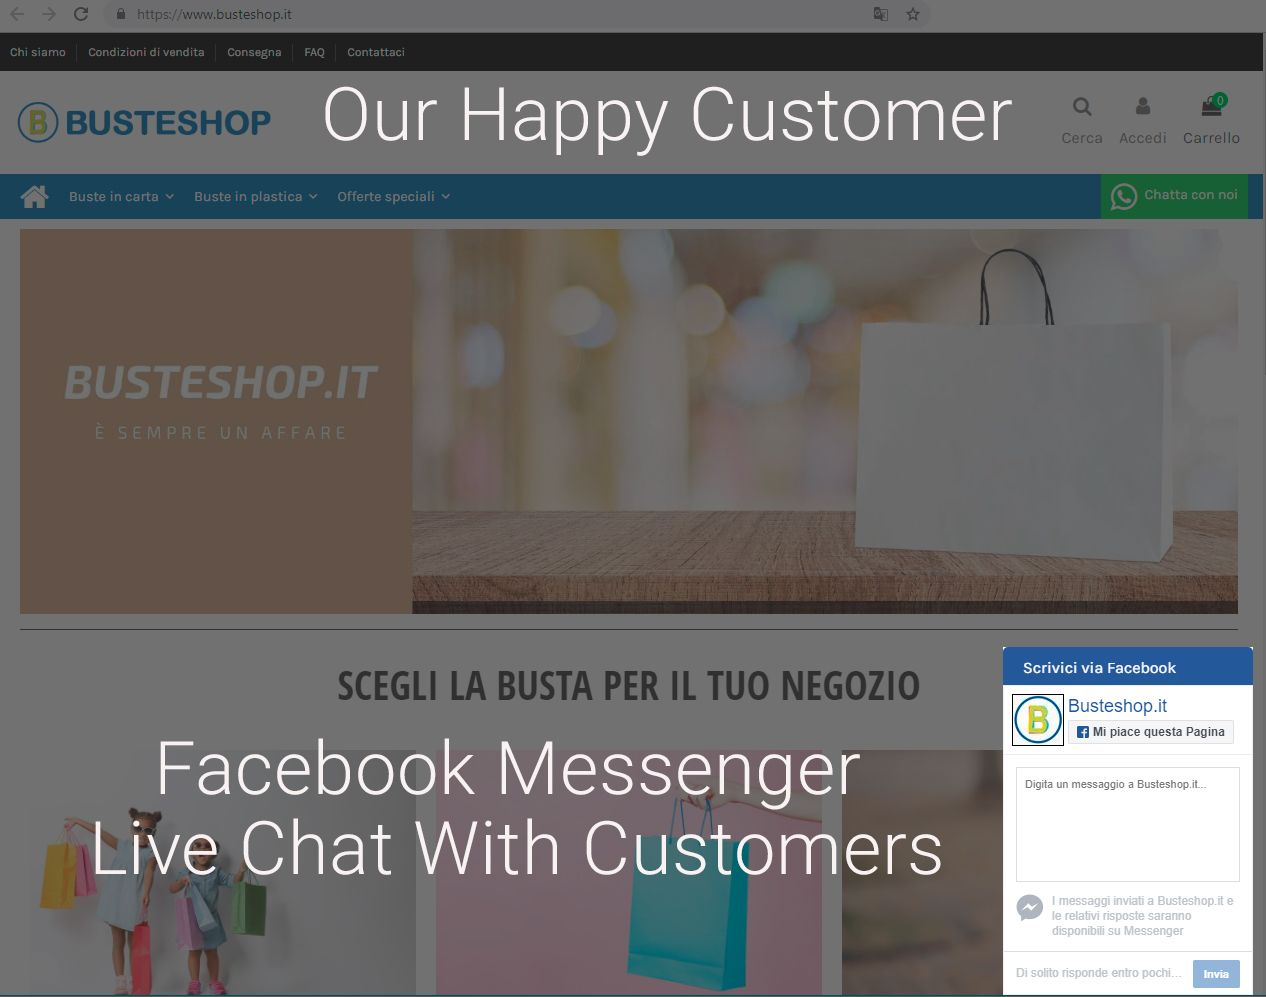 Messenger Live Chat With Customers Module in 2019